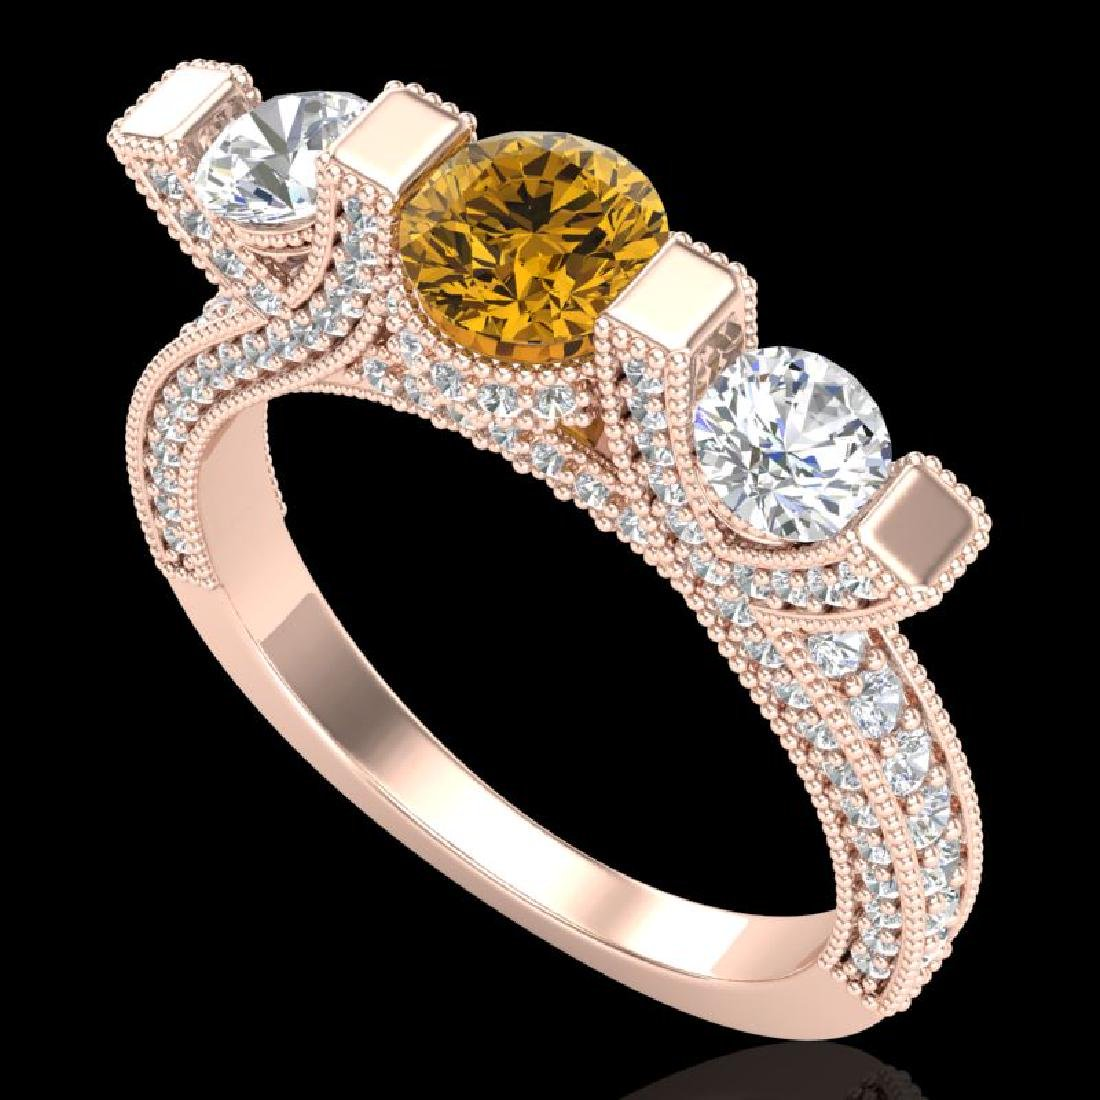 2.3 CTW Intense Fancy Yellow Diamond Micro Pave 3 Stone